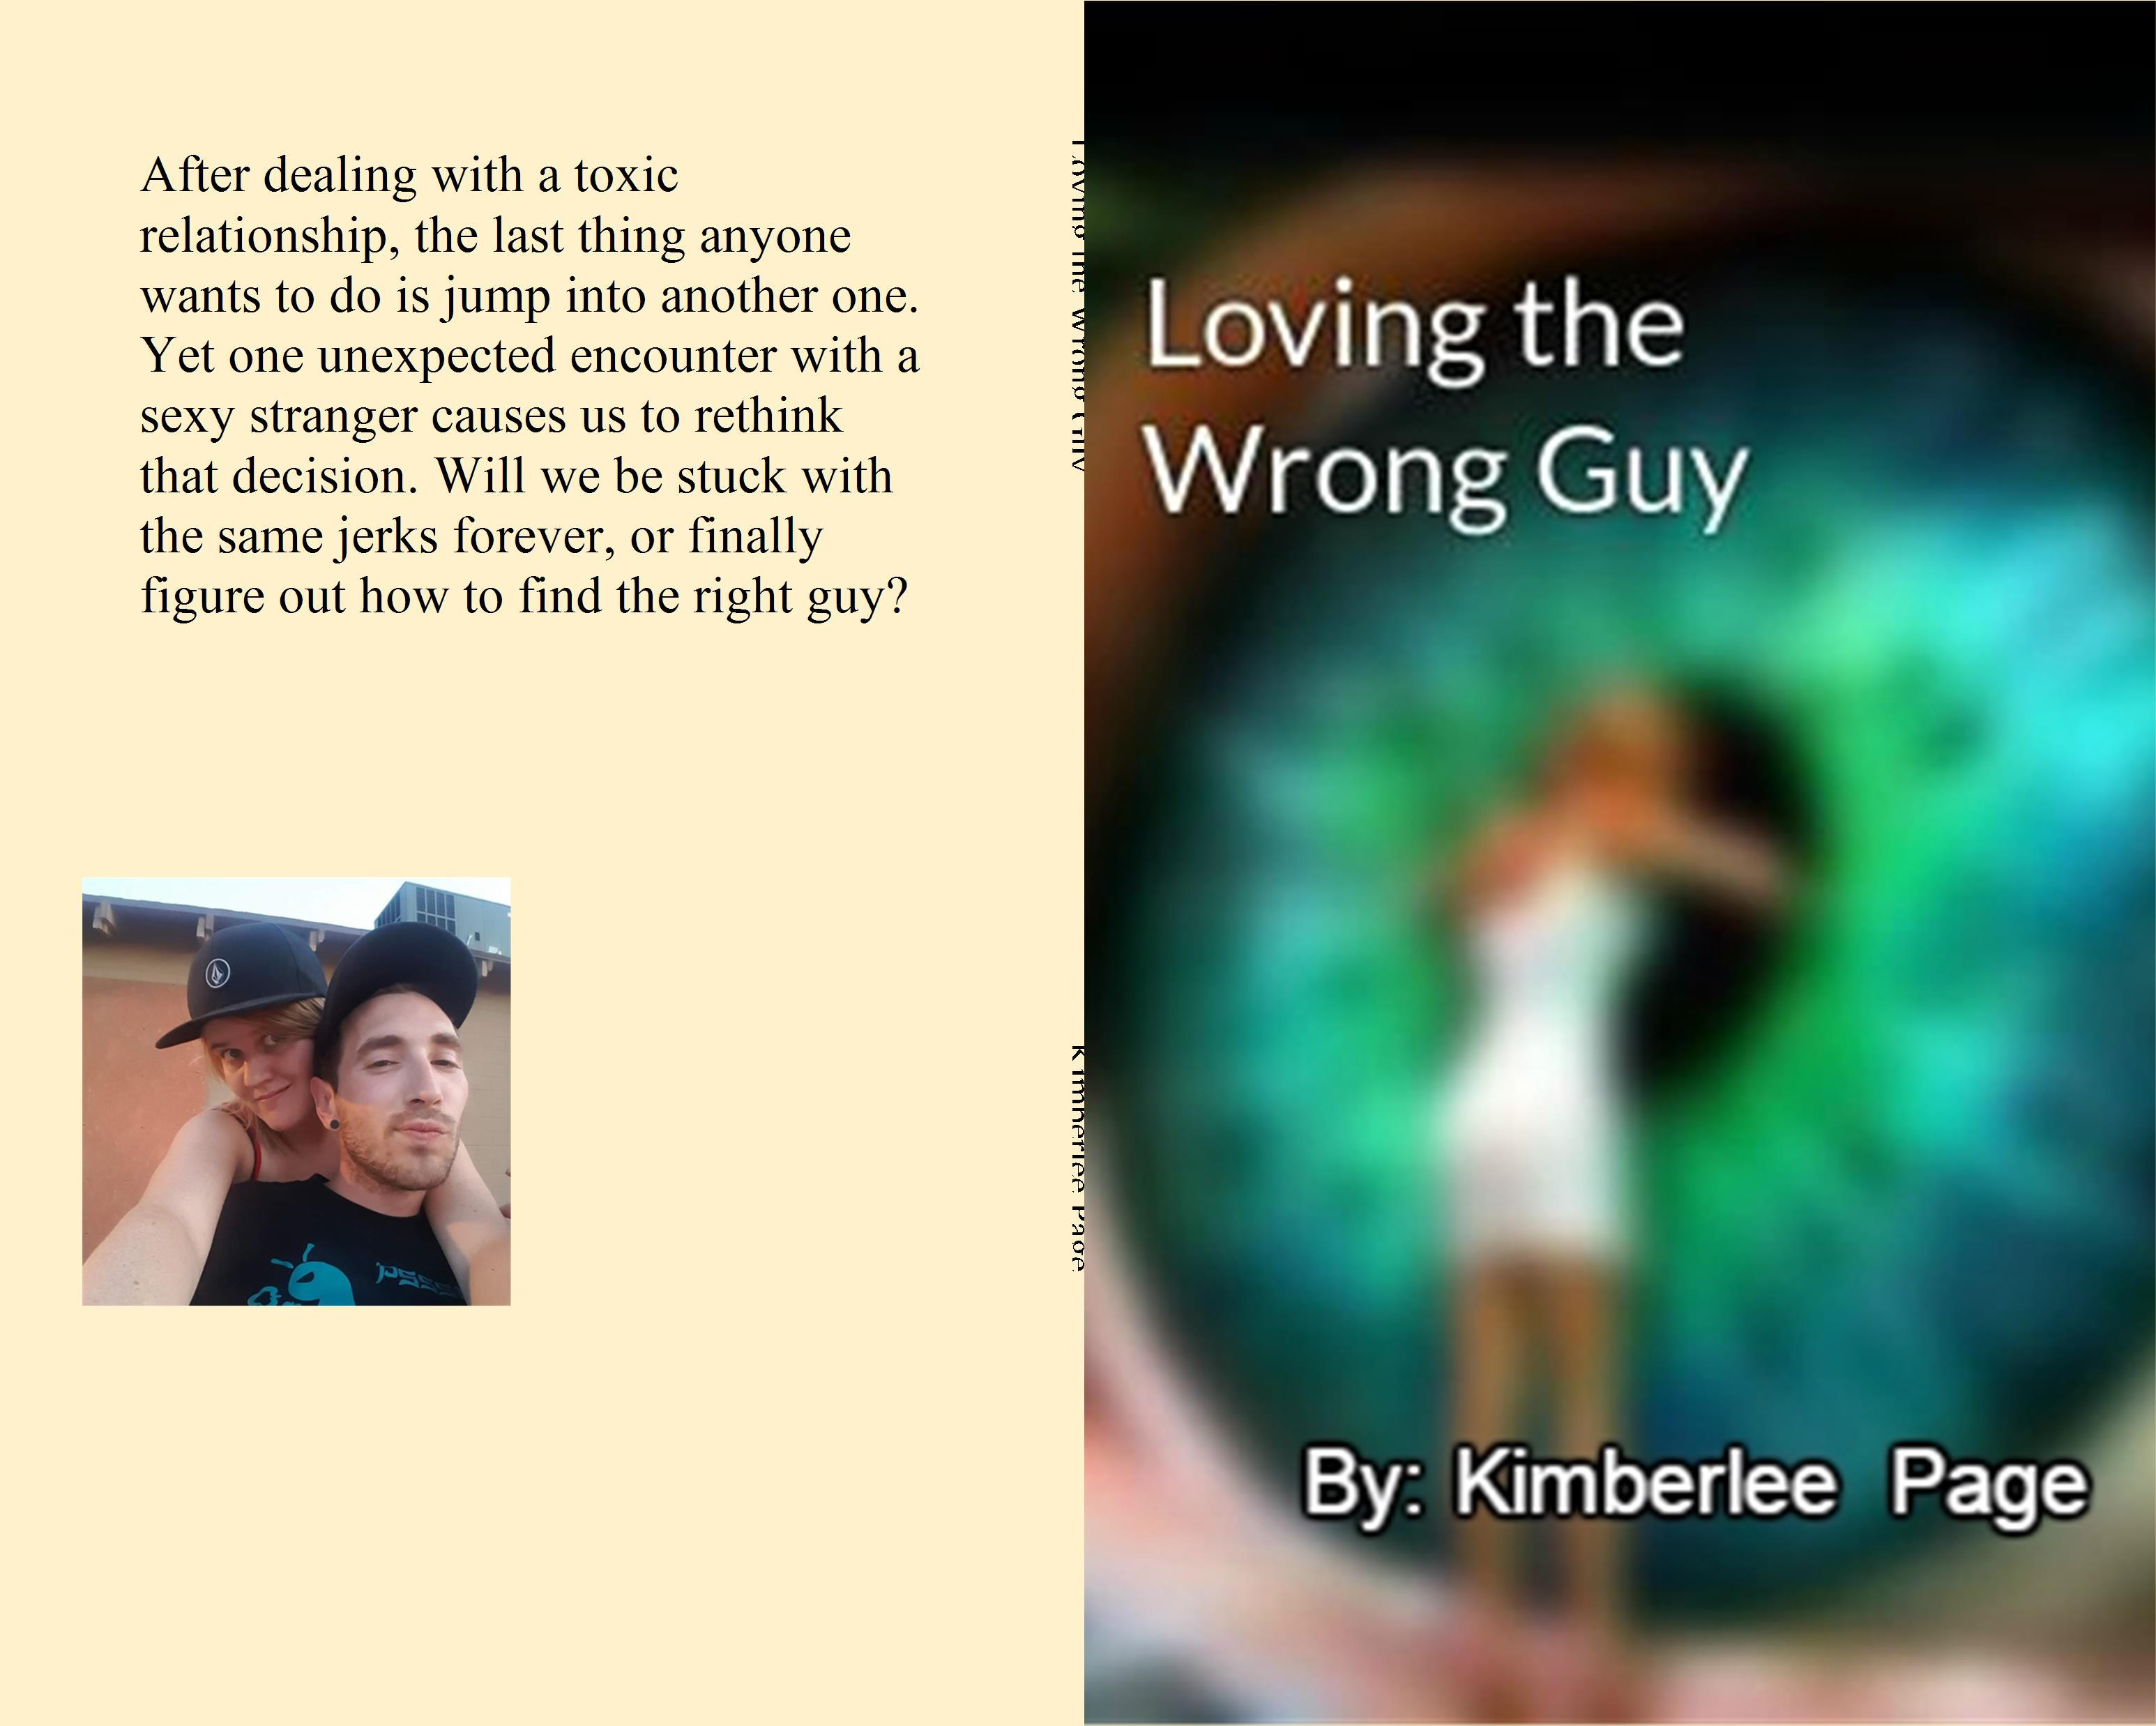 Loving the Wrong Guy cover image